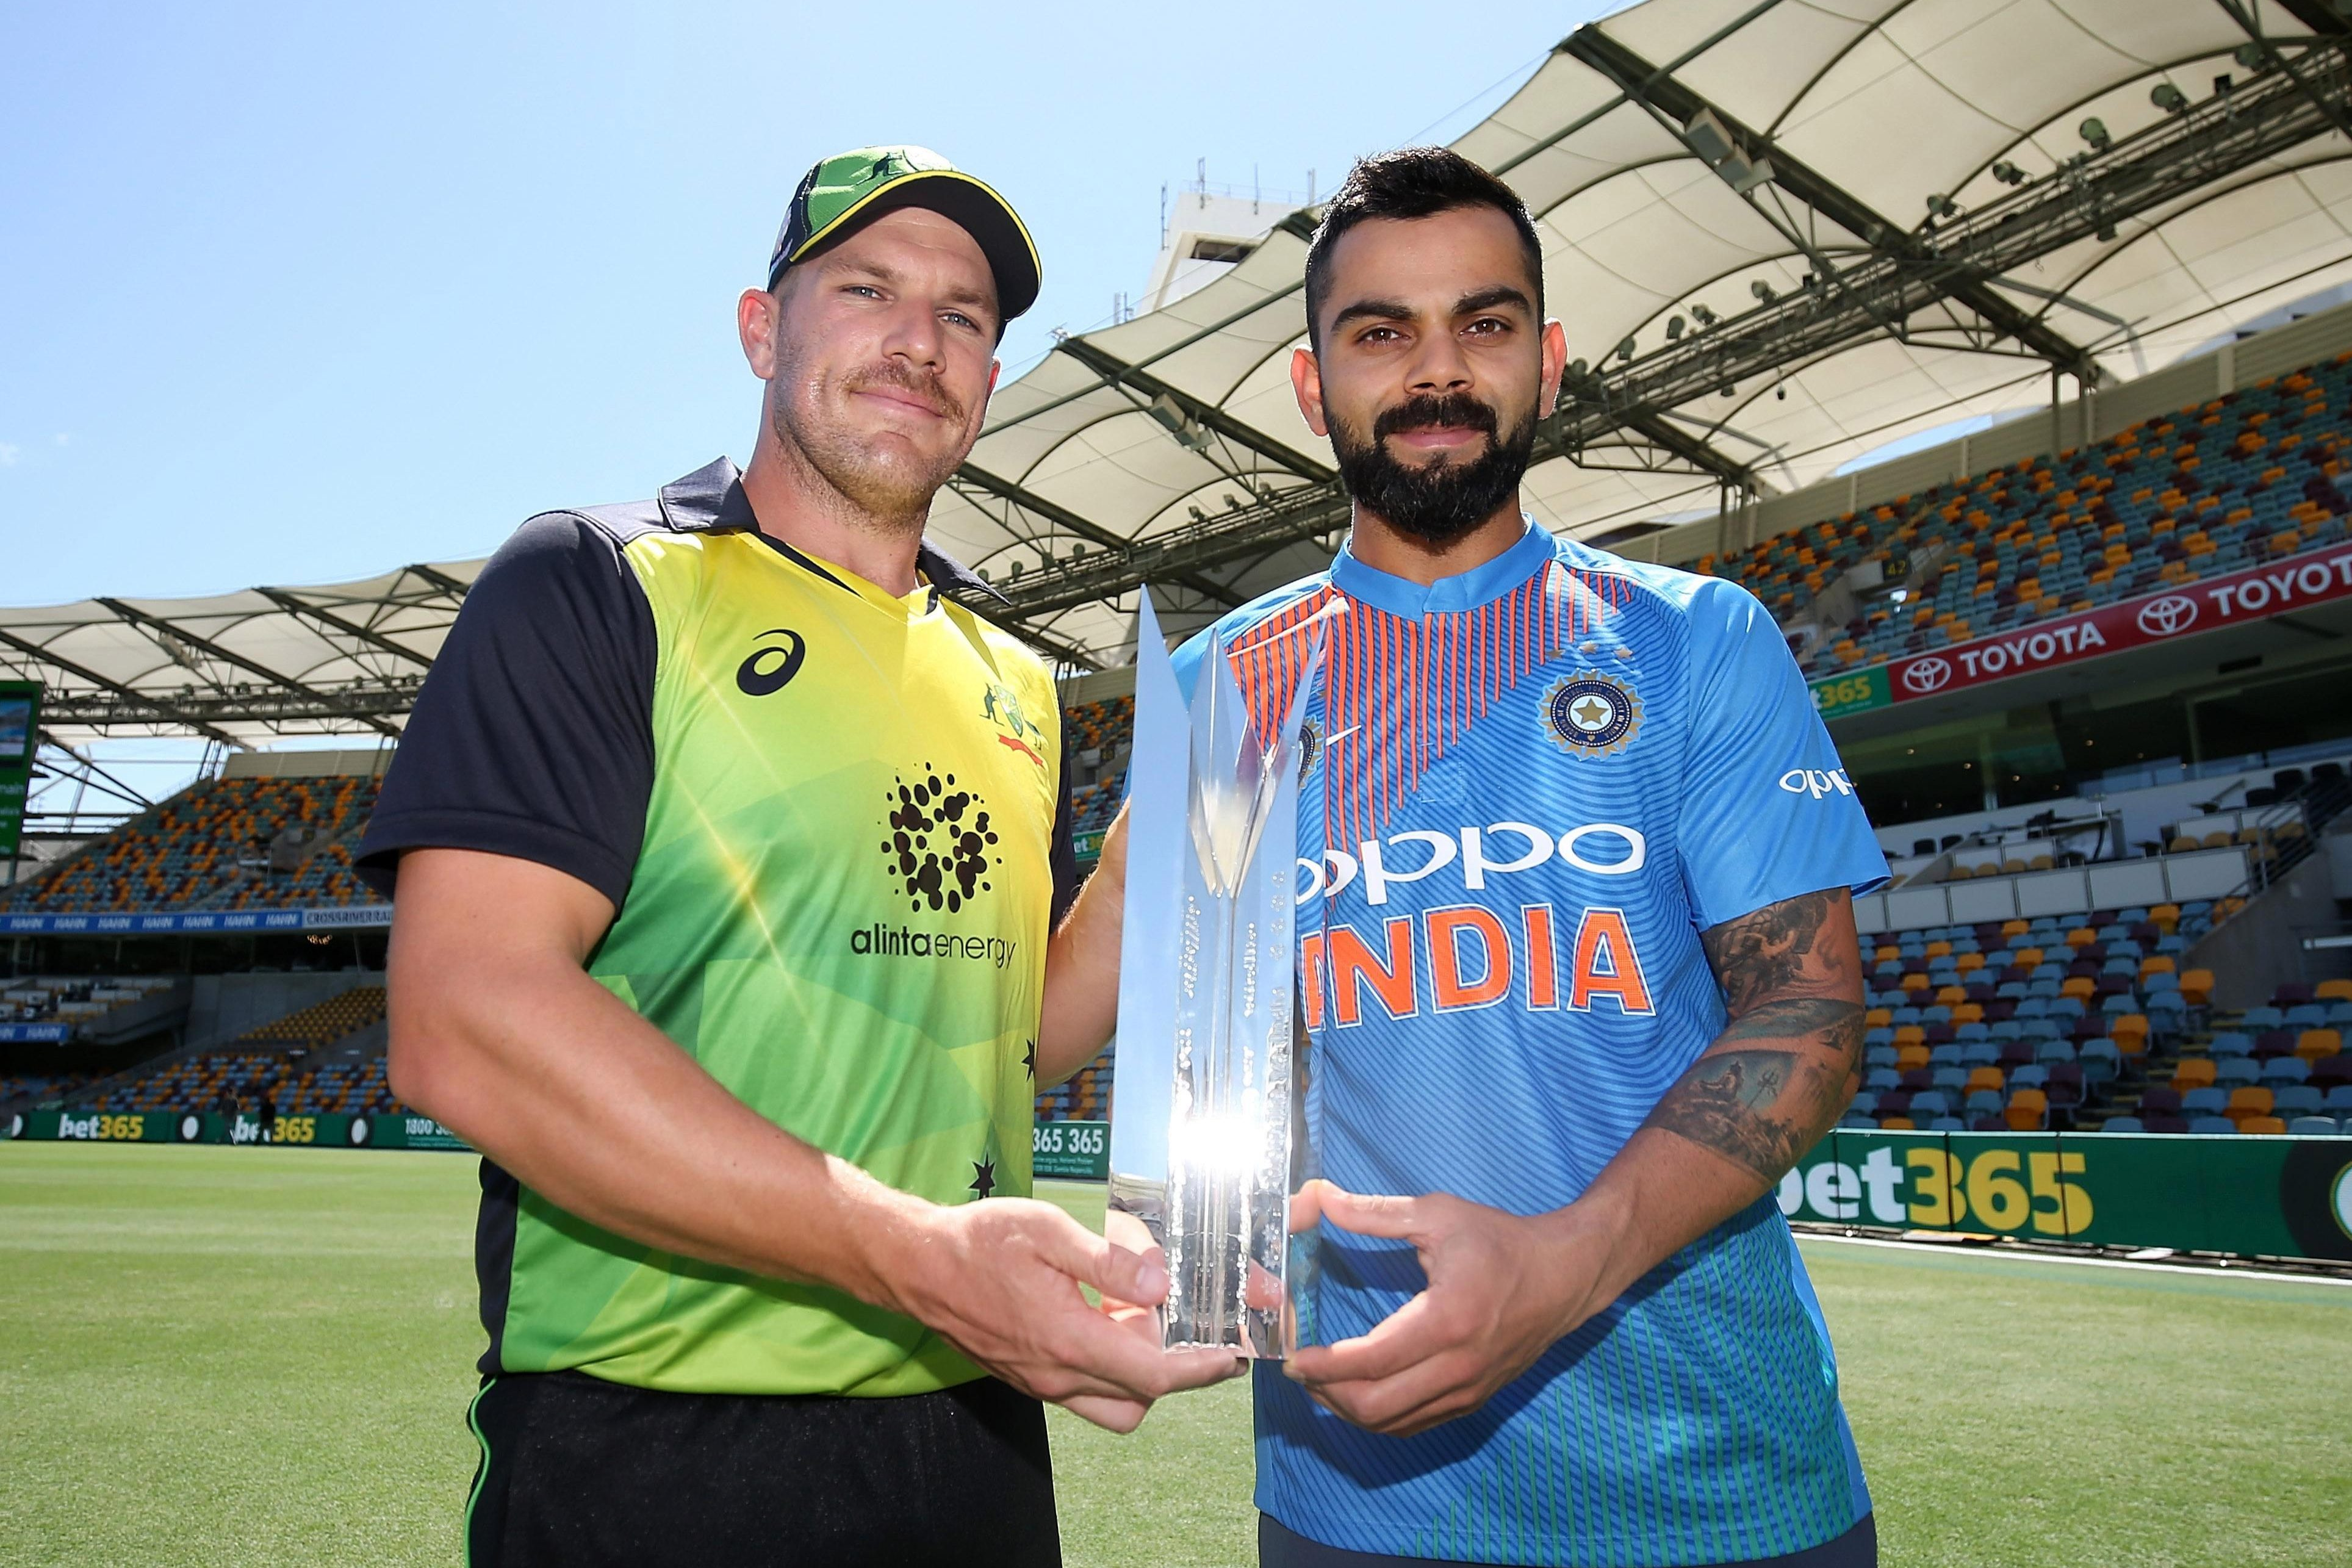 Captains Aaron Finch and Virat Kohli ahead of opener at The Gabba